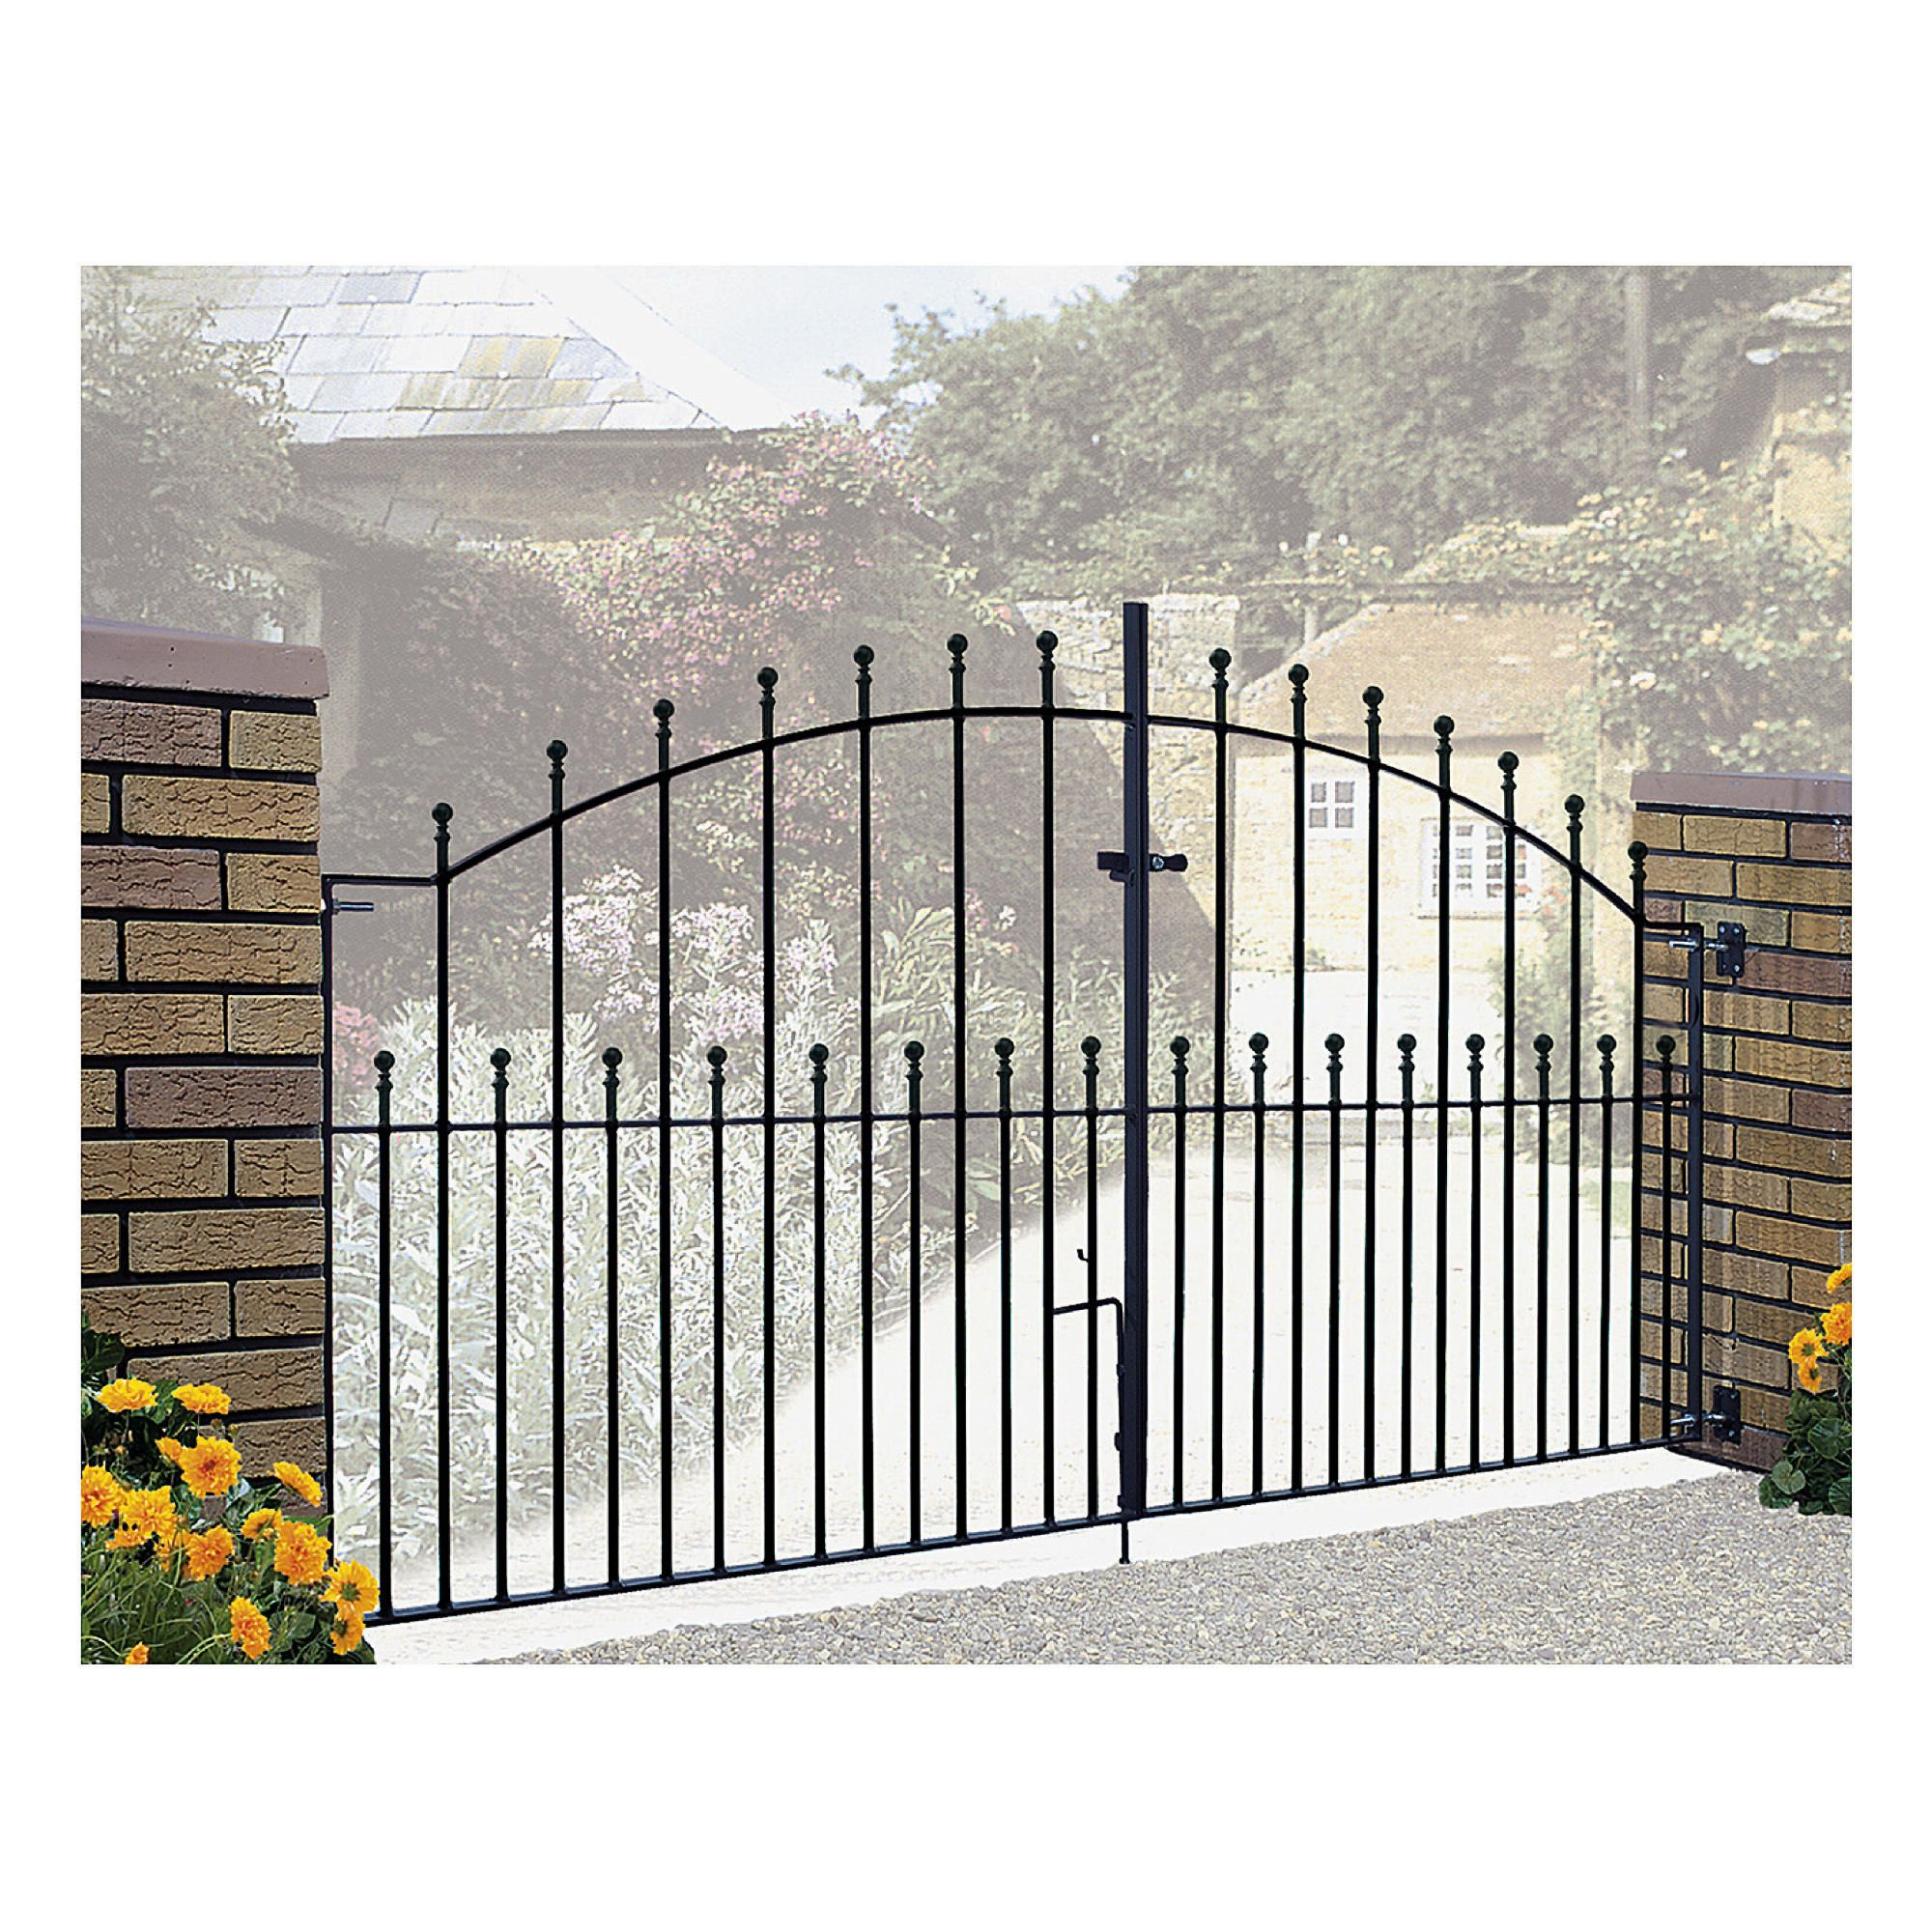 Burbage Manor Ball Double Metal Gate MA13 at Tesco Direct